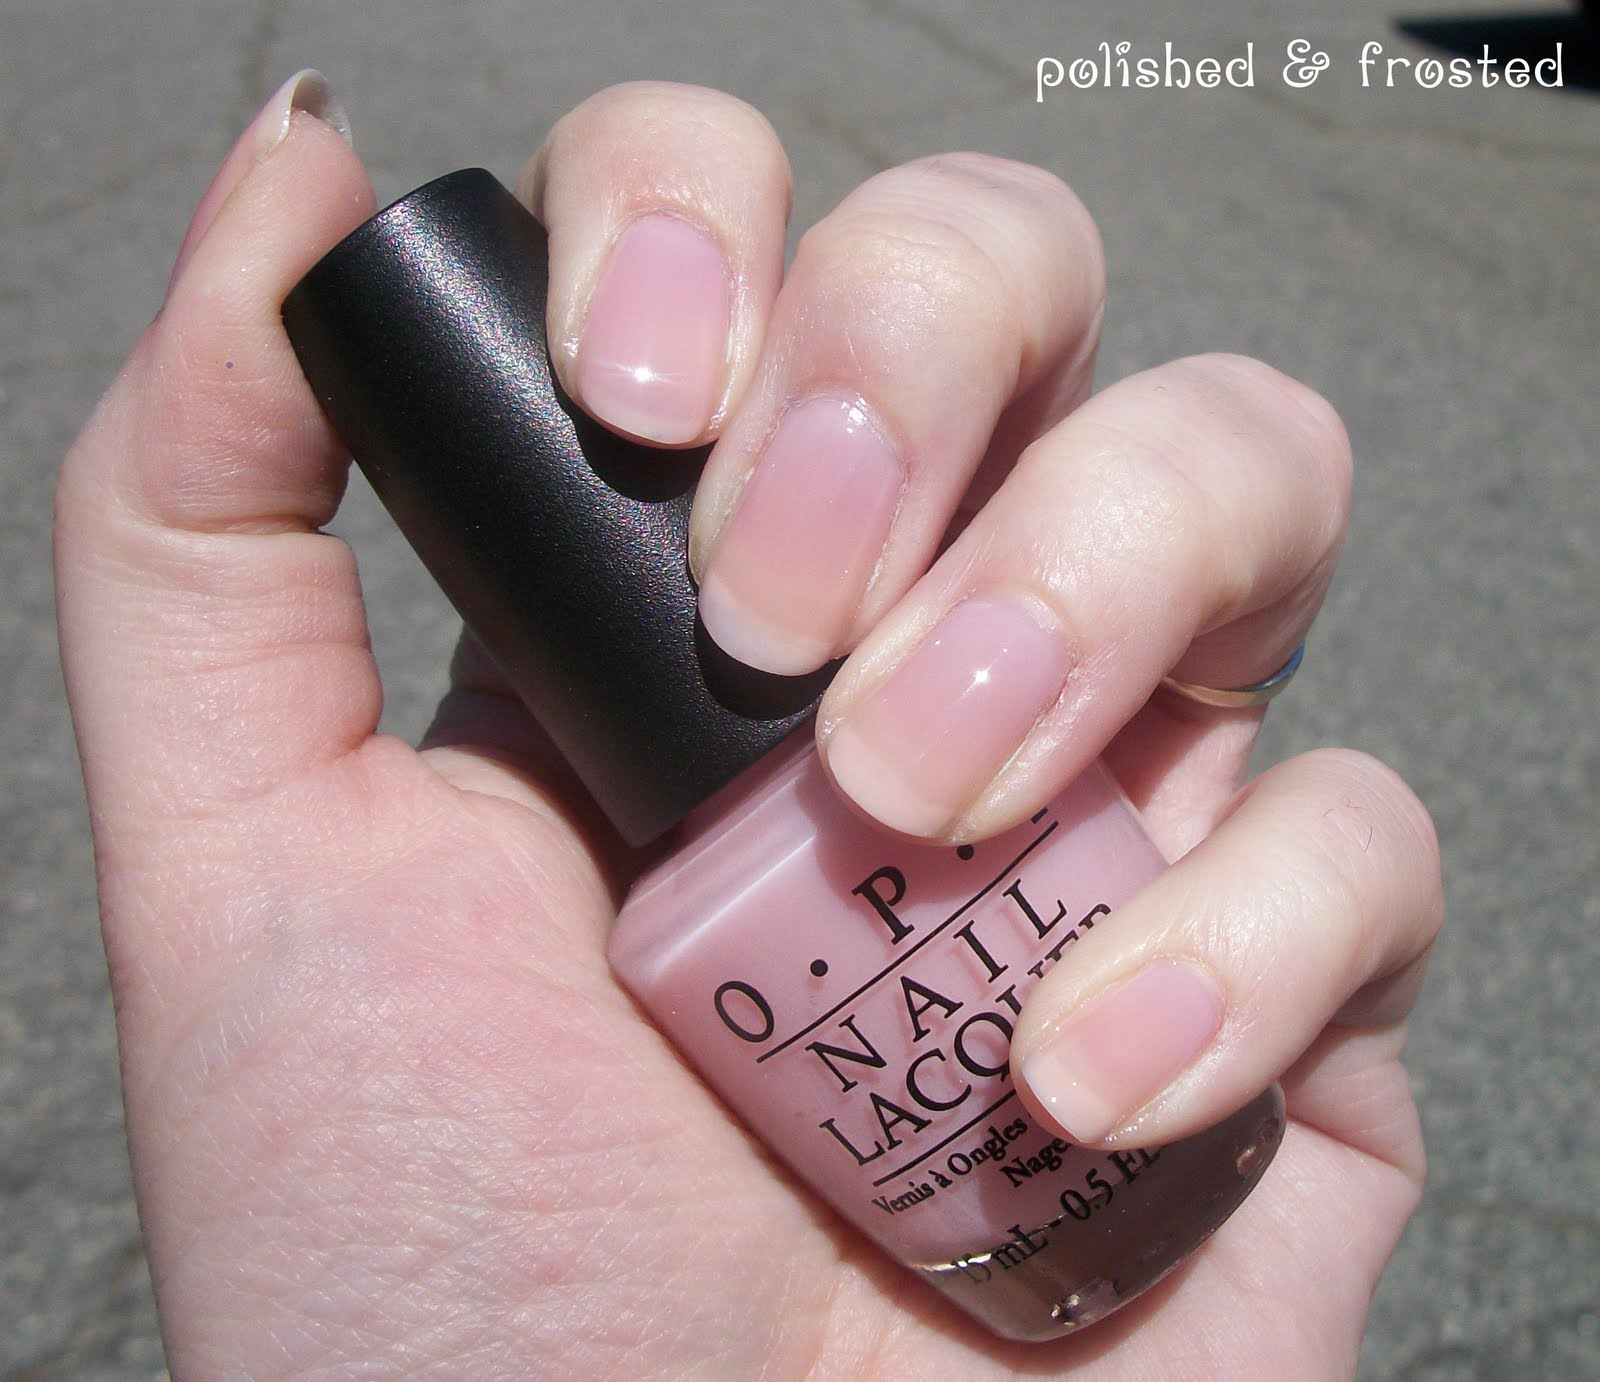 polished & frosted: OPI Femme de Cirque Collection